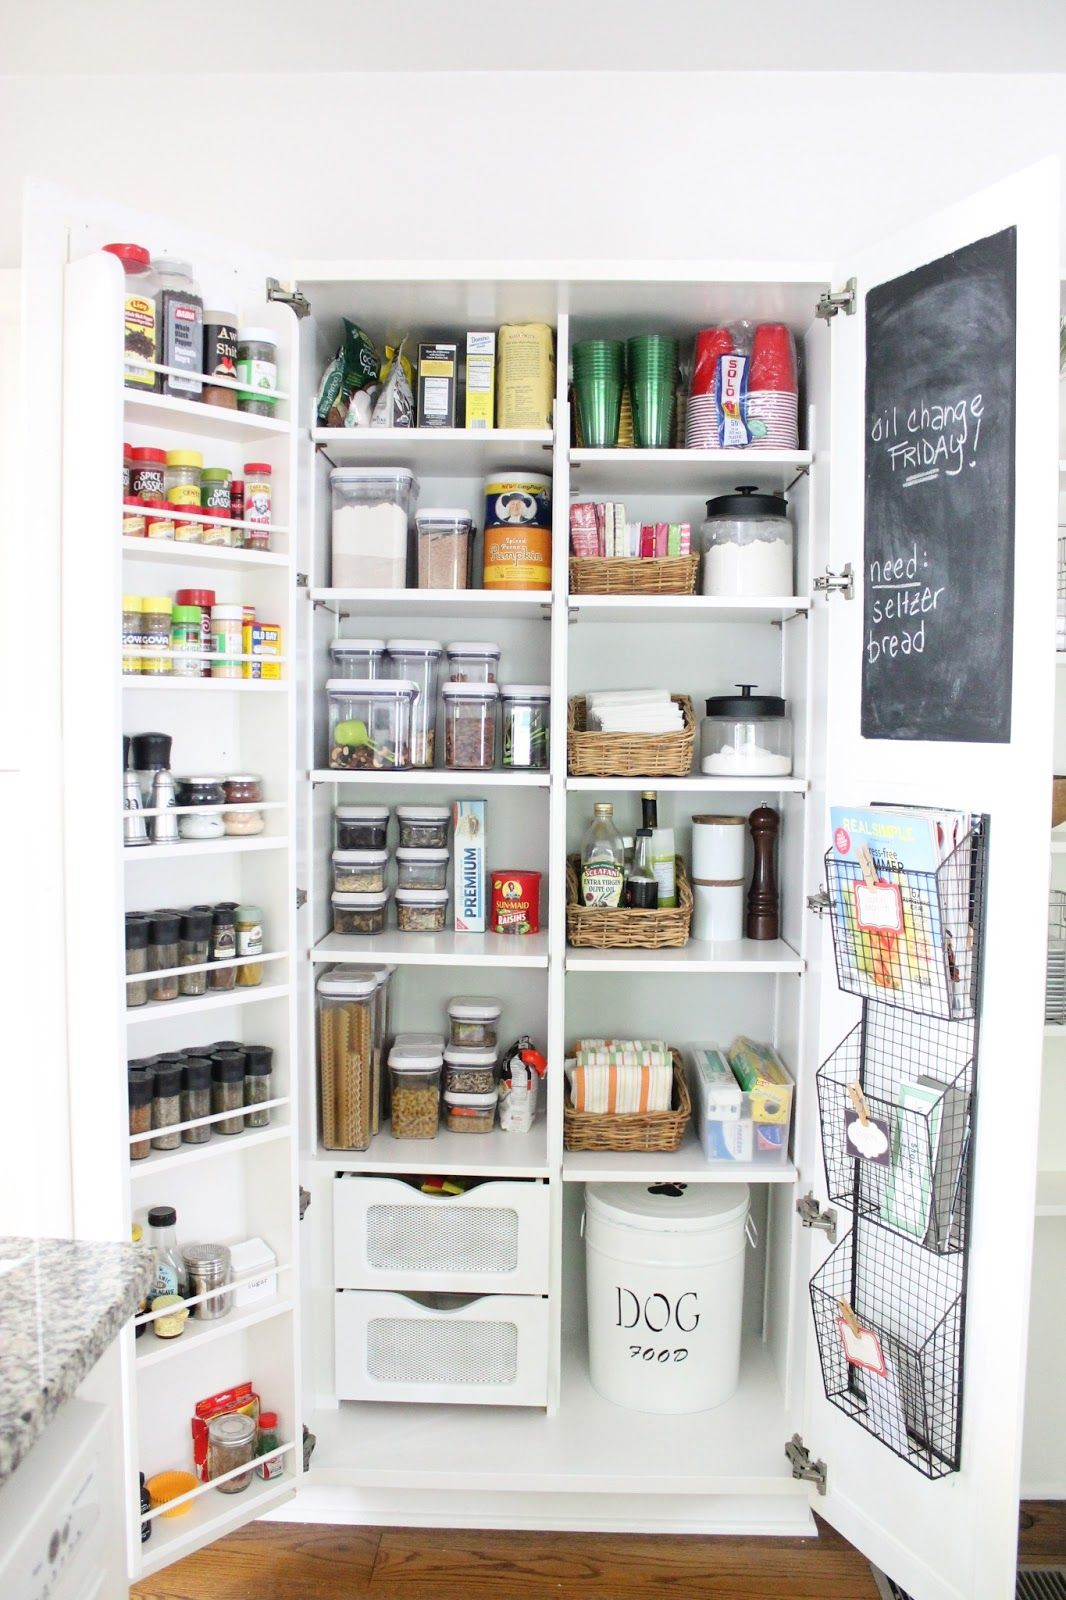 The pantry: so fresh and so clean clean | kitchens | Pinterest ...